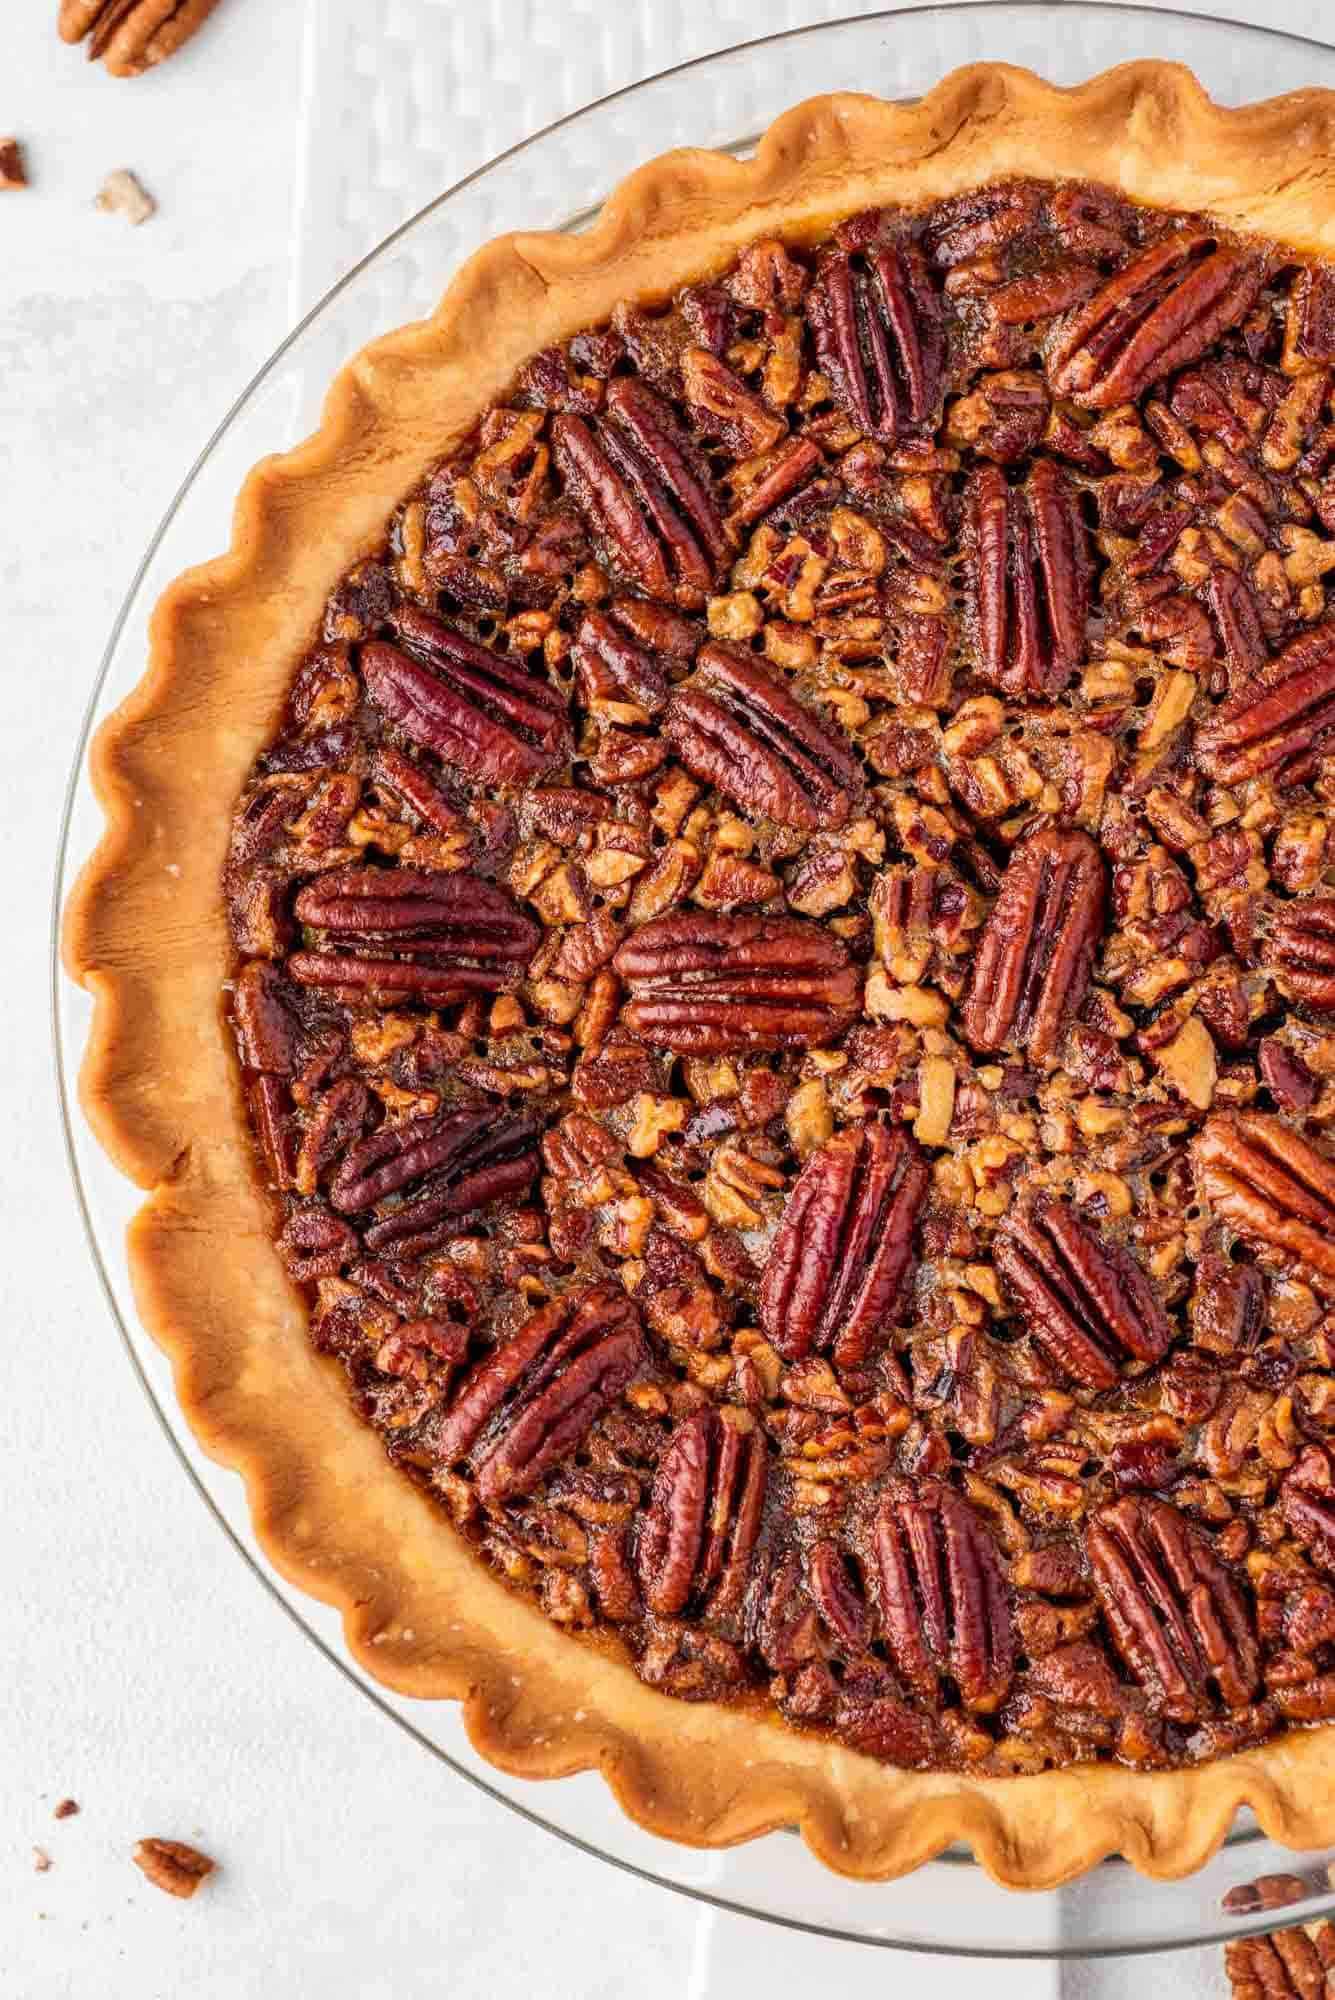 Overhead shot of a whole pecan pie in a glass pie dish